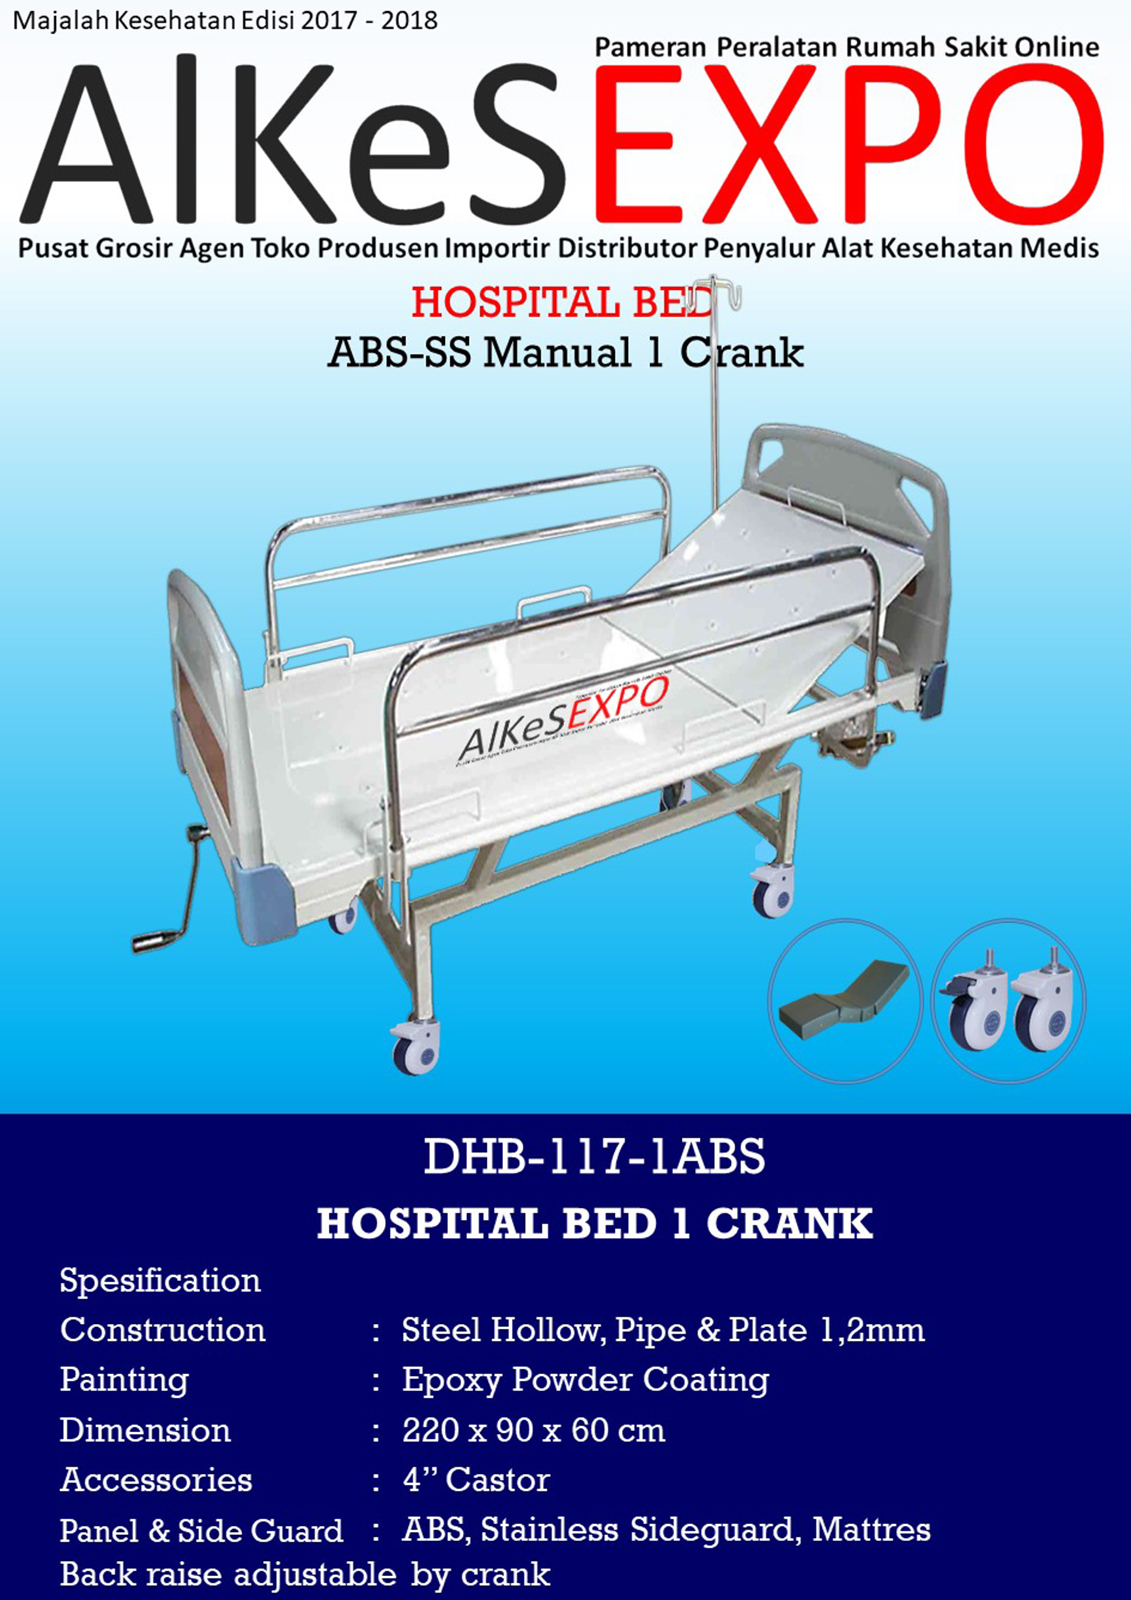 Hospital Bed Manual ABS-SS 1 Crank DHB-117-1ABS